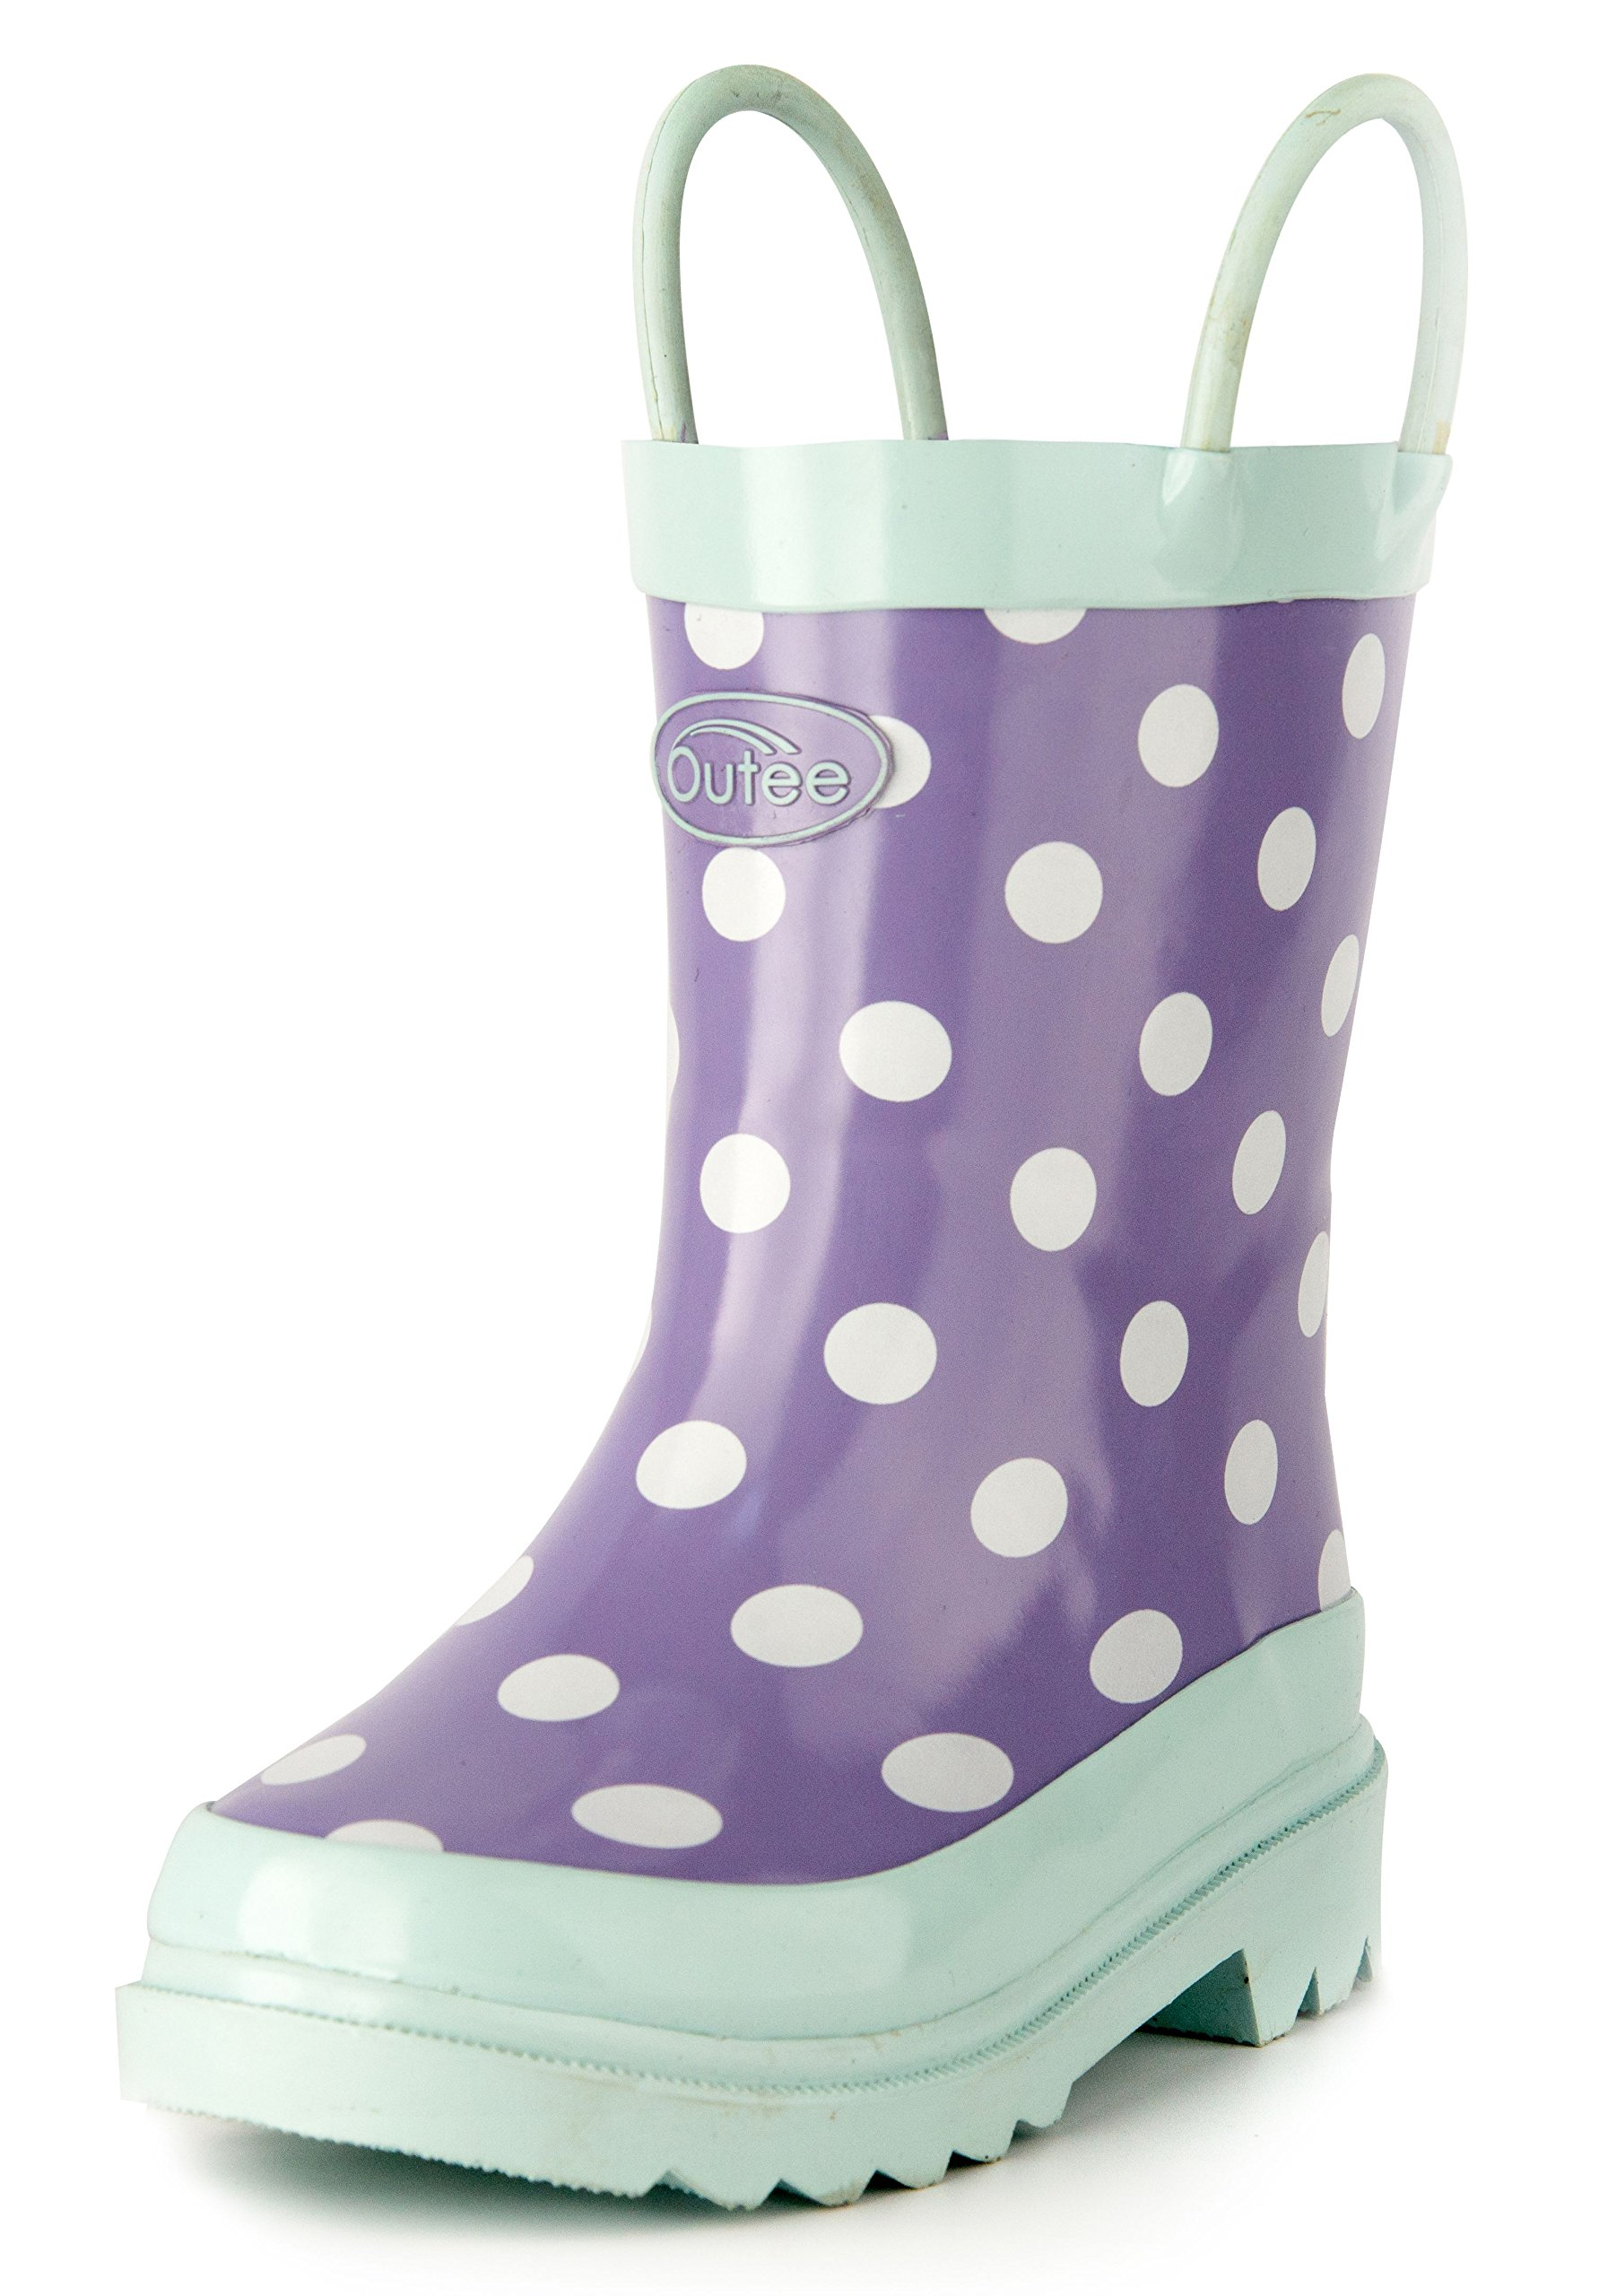 Outee Toddler Girls Kids Rain Boots Rubber Purple Waterproof Shoes Polka Dots Cute Print with Easy-On Handles Classic Comfortable Removable Insoles Anti-Slippery Durable Sole with Grip (Size 5,Purple)